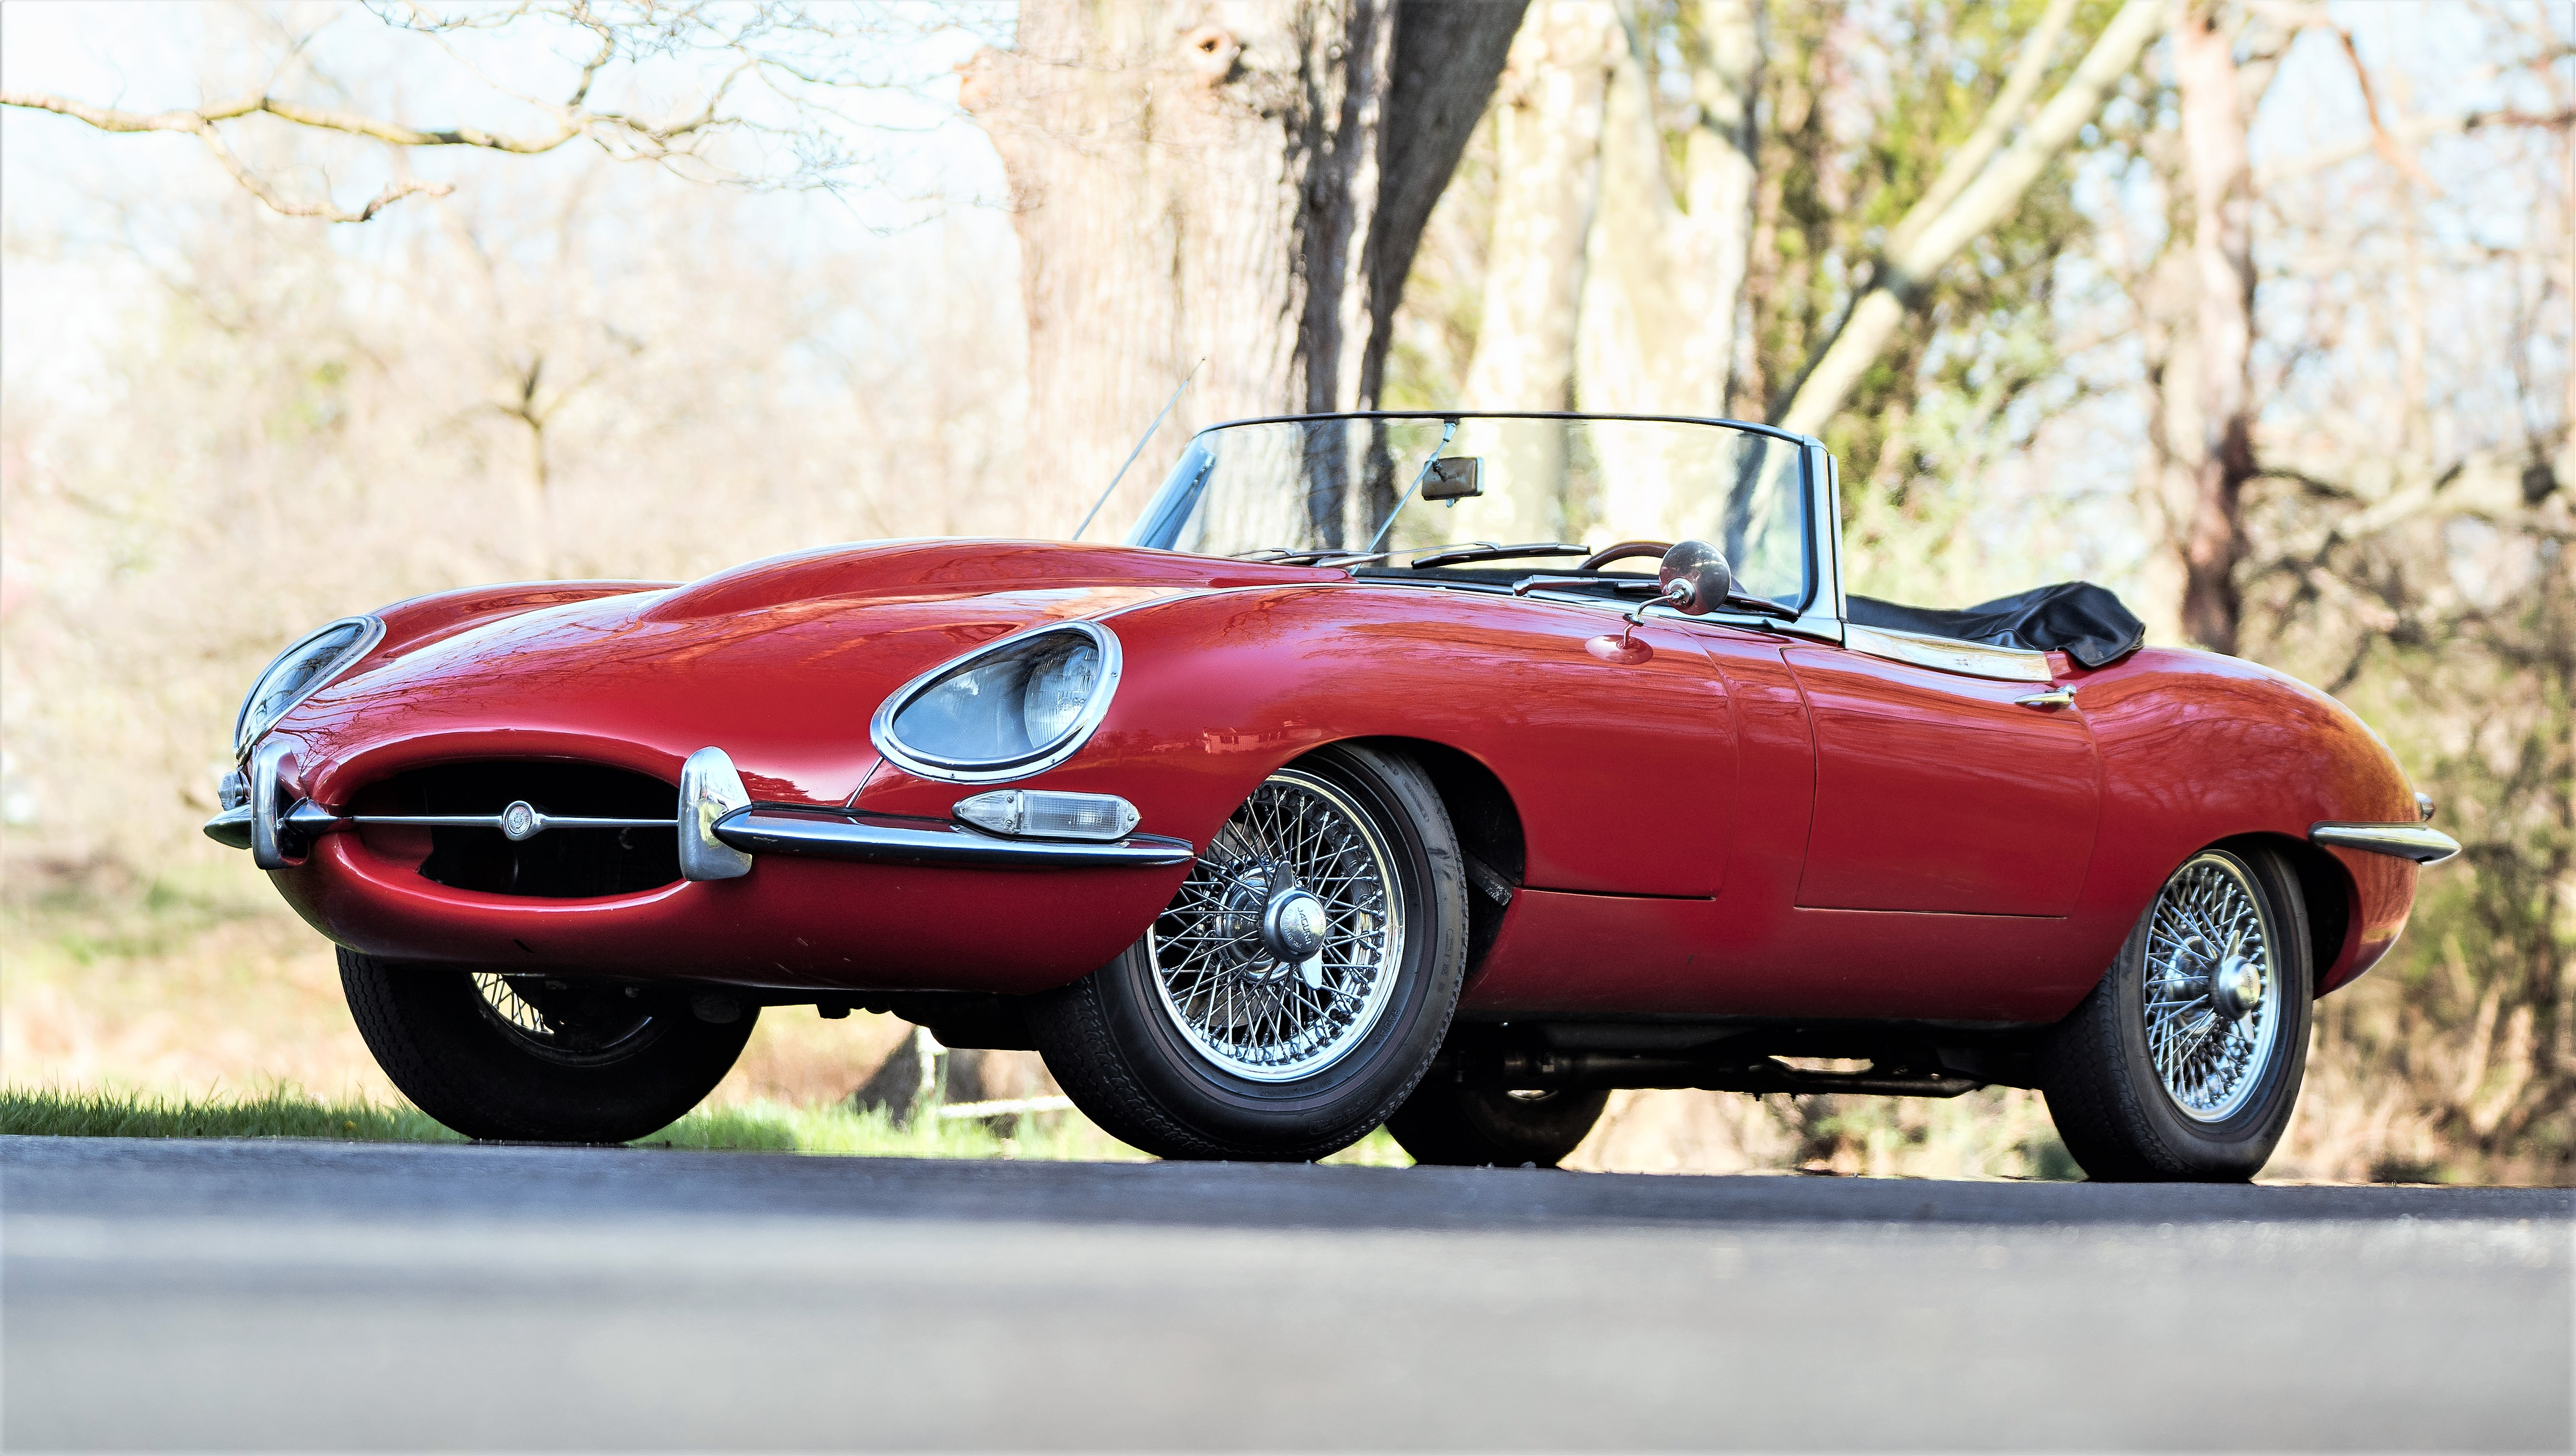 The 1960s sports cars include this Jaguar E-Type roadster